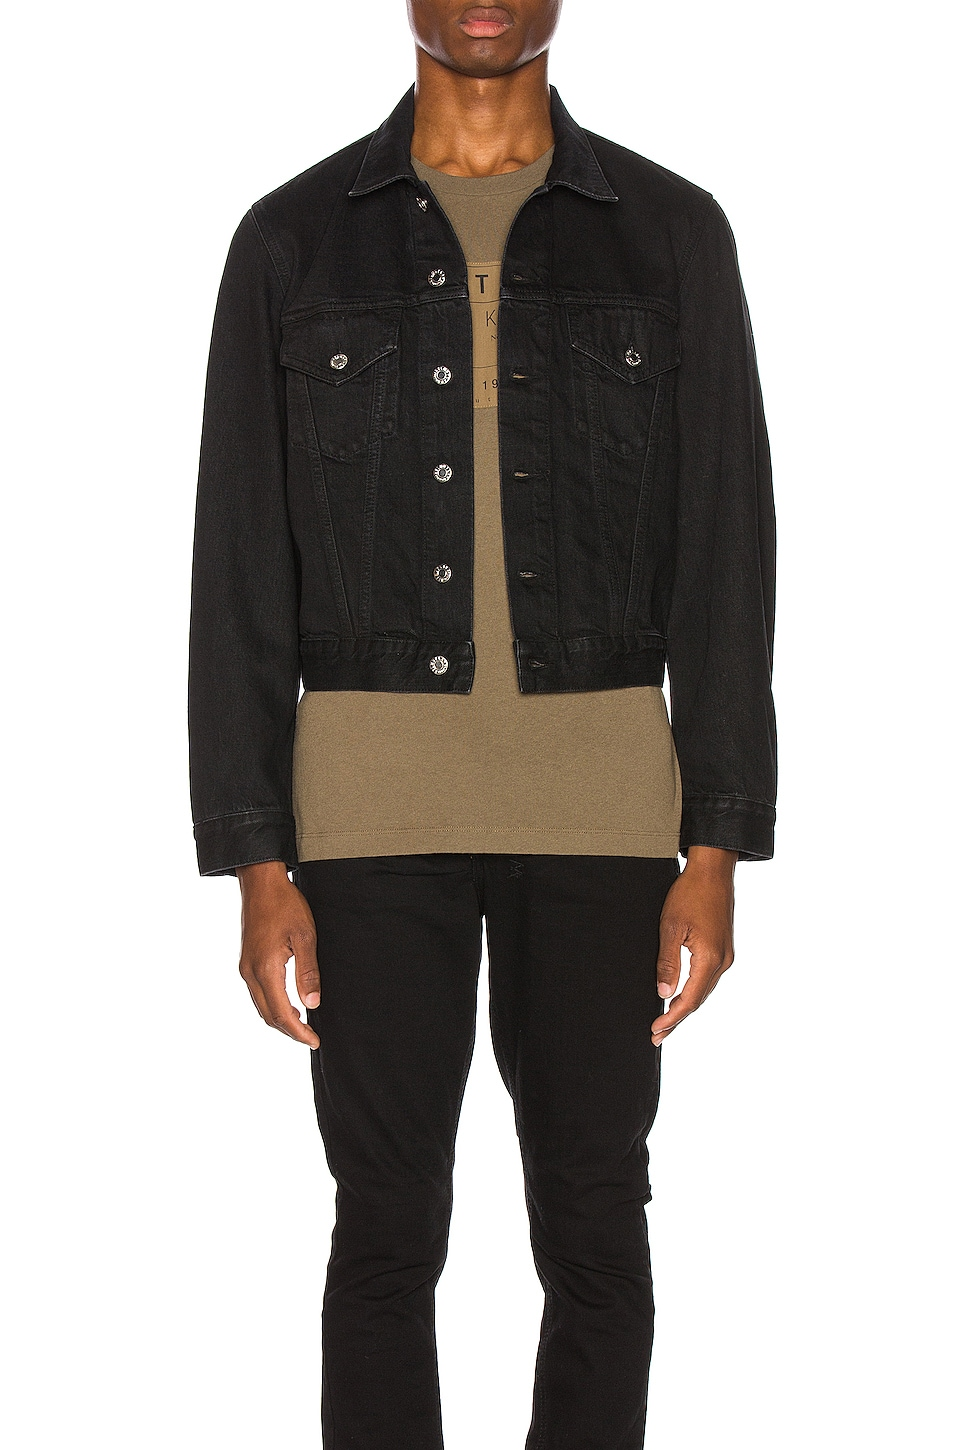 Helmut Lang Masc Trucker Matt Jacket in Black